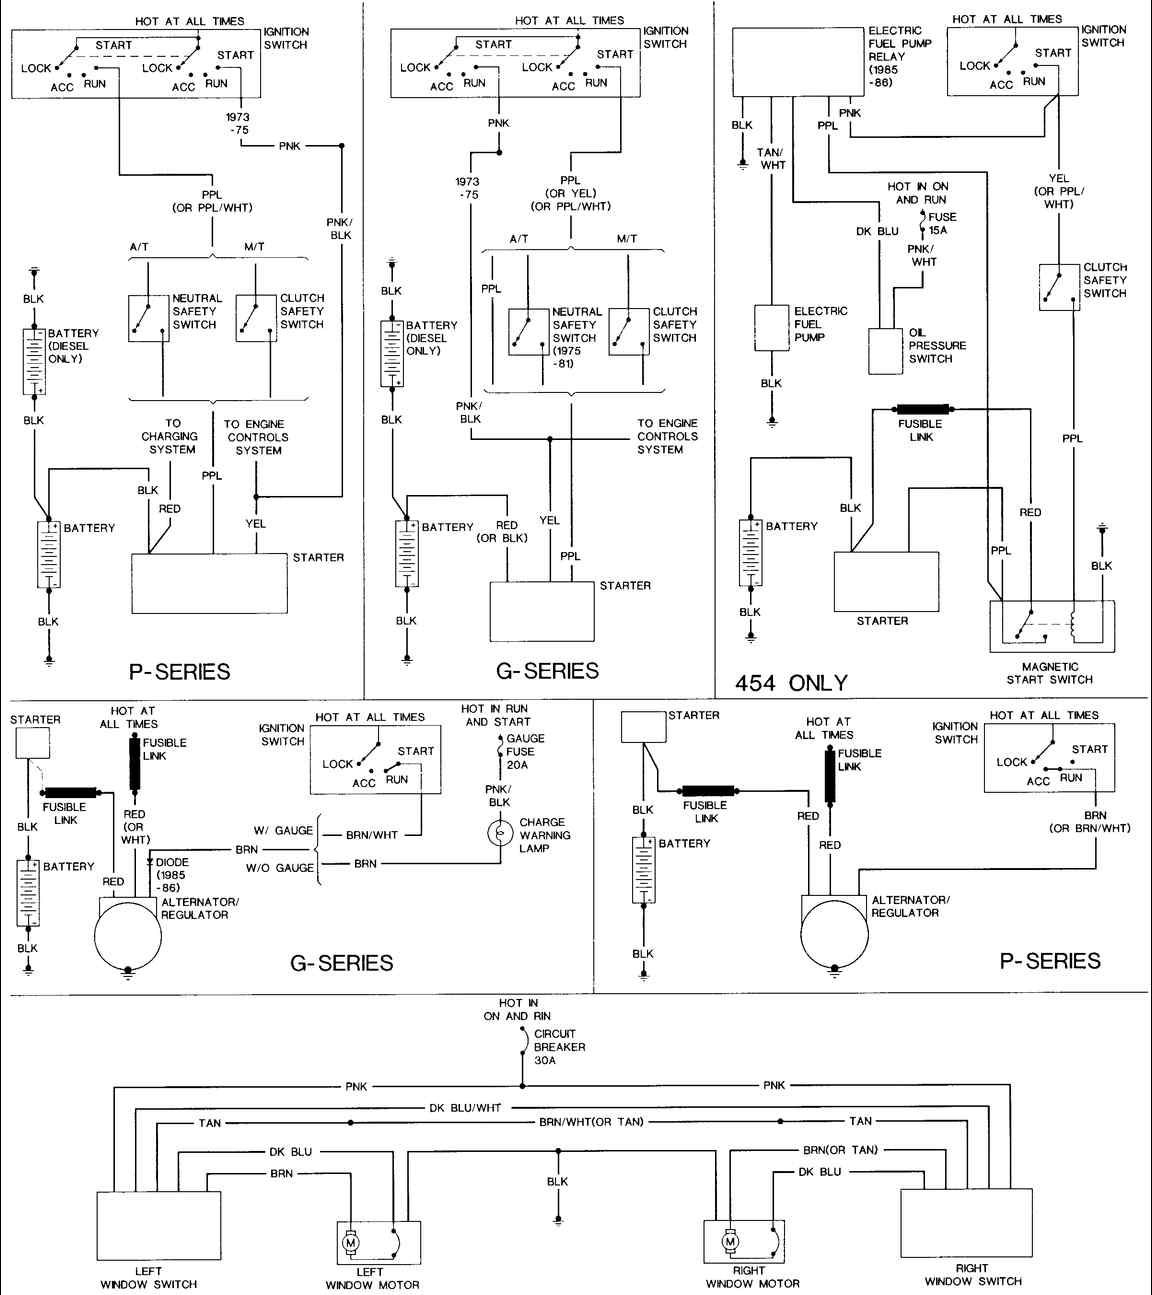 0c73623a181dc376dbb4777e2029d285 85 chevy truck wiring diagram 85 chevy van the steering column mitsubishi mini truck wiring diagram at edmiracle.co